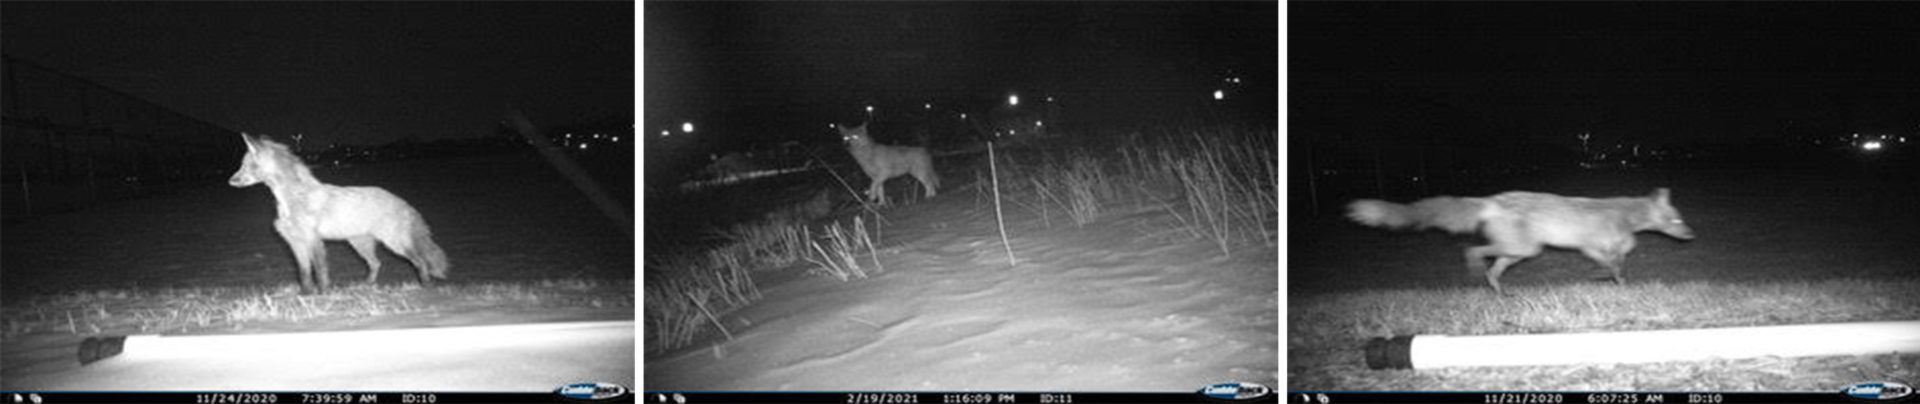 Fox images captured by night remote cameras